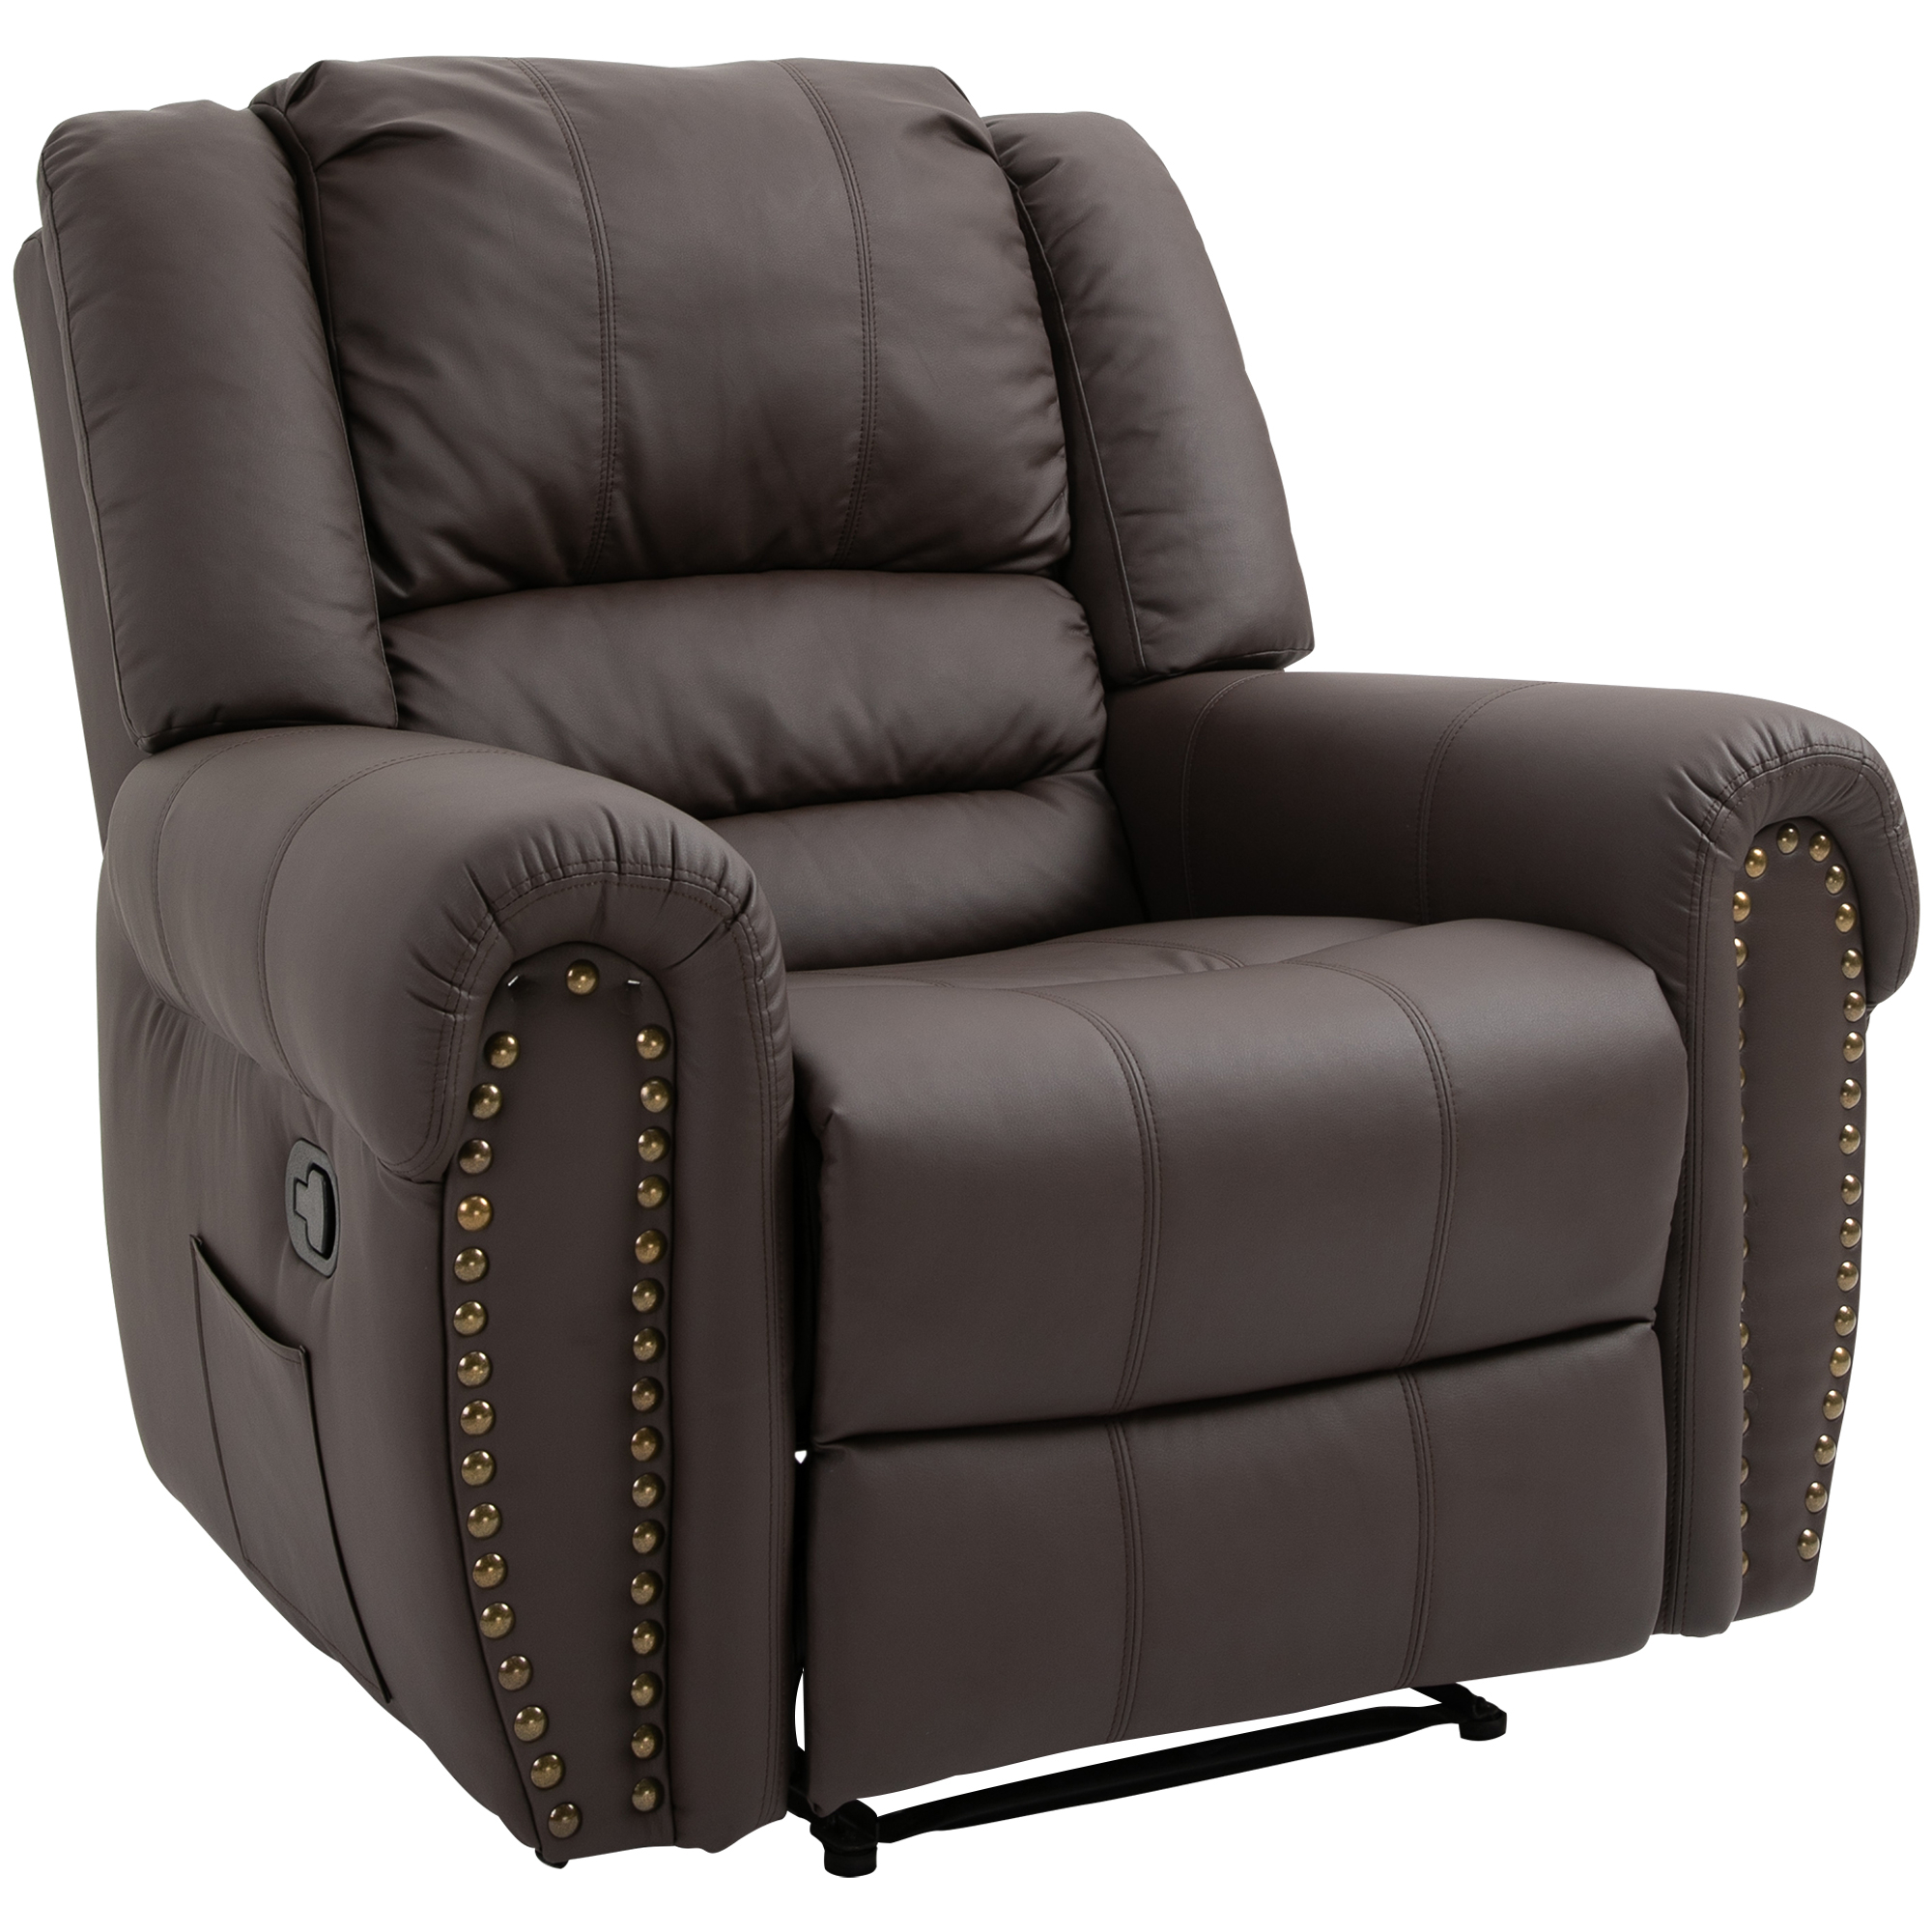 Homcom Manual Recliner Sofa With Footrest Armchair Cushion Within Manual Reclining Sofas (View 10 of 11)